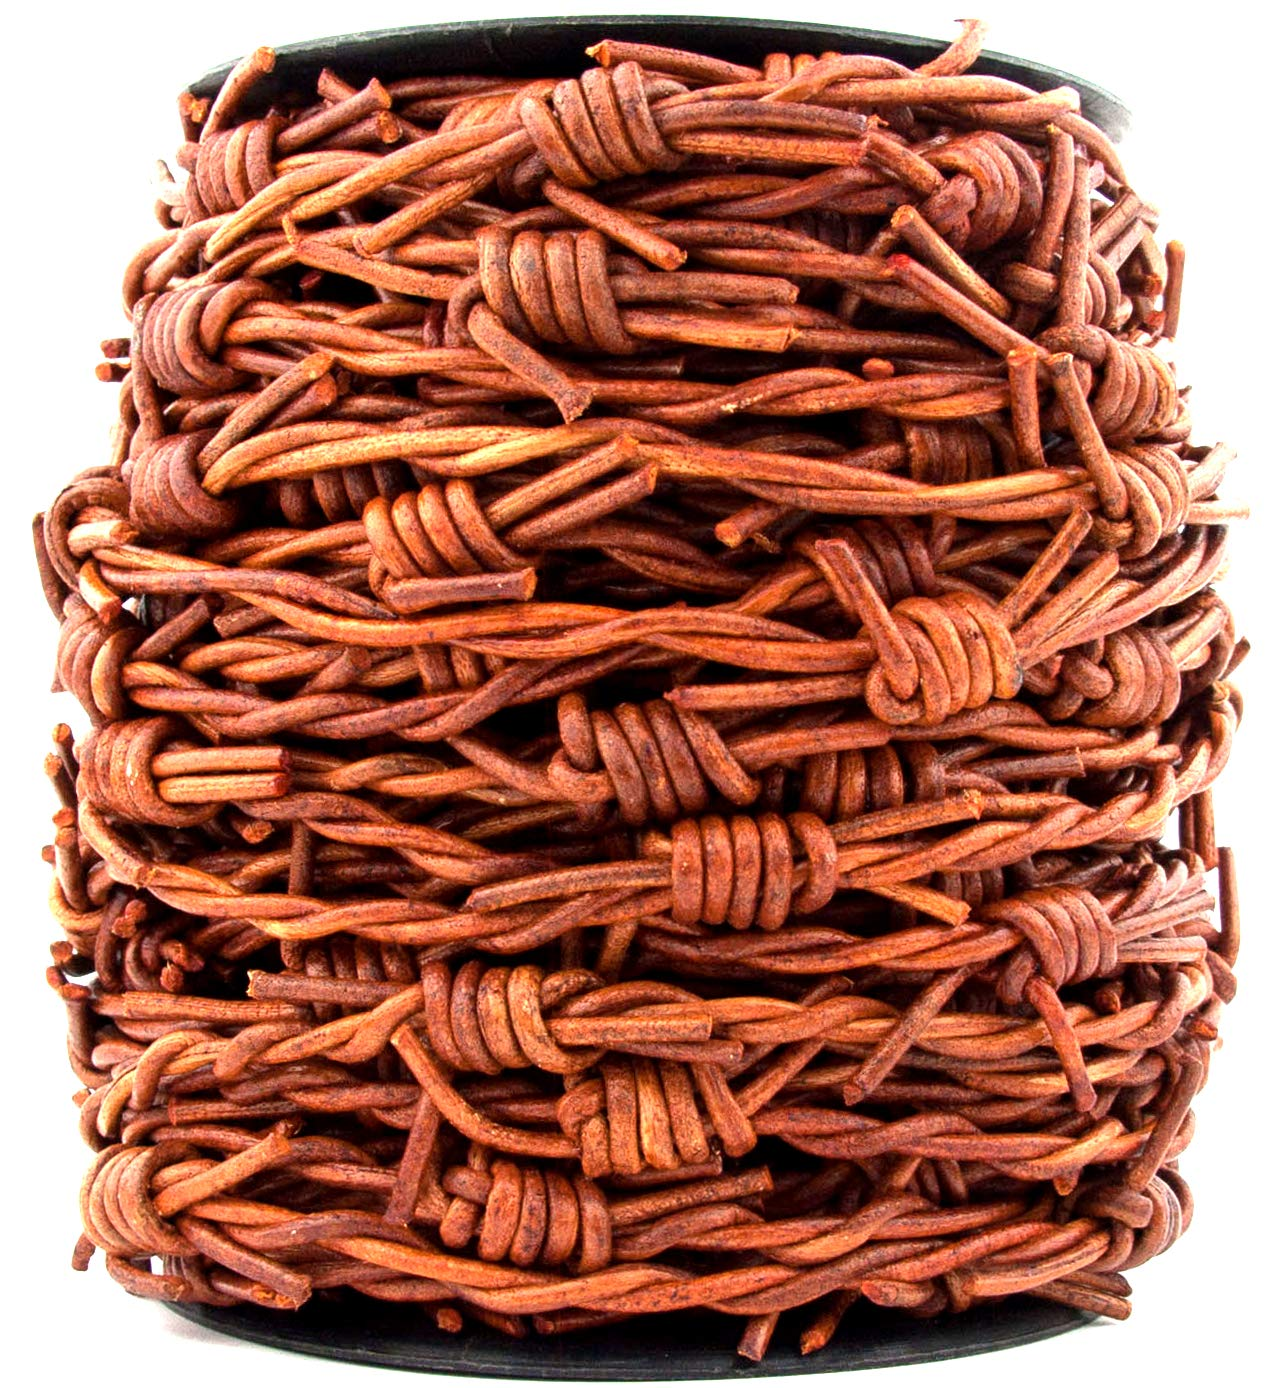 Xsotica-Barbed Wire Leather Cord 1 Yard Distressed Brown